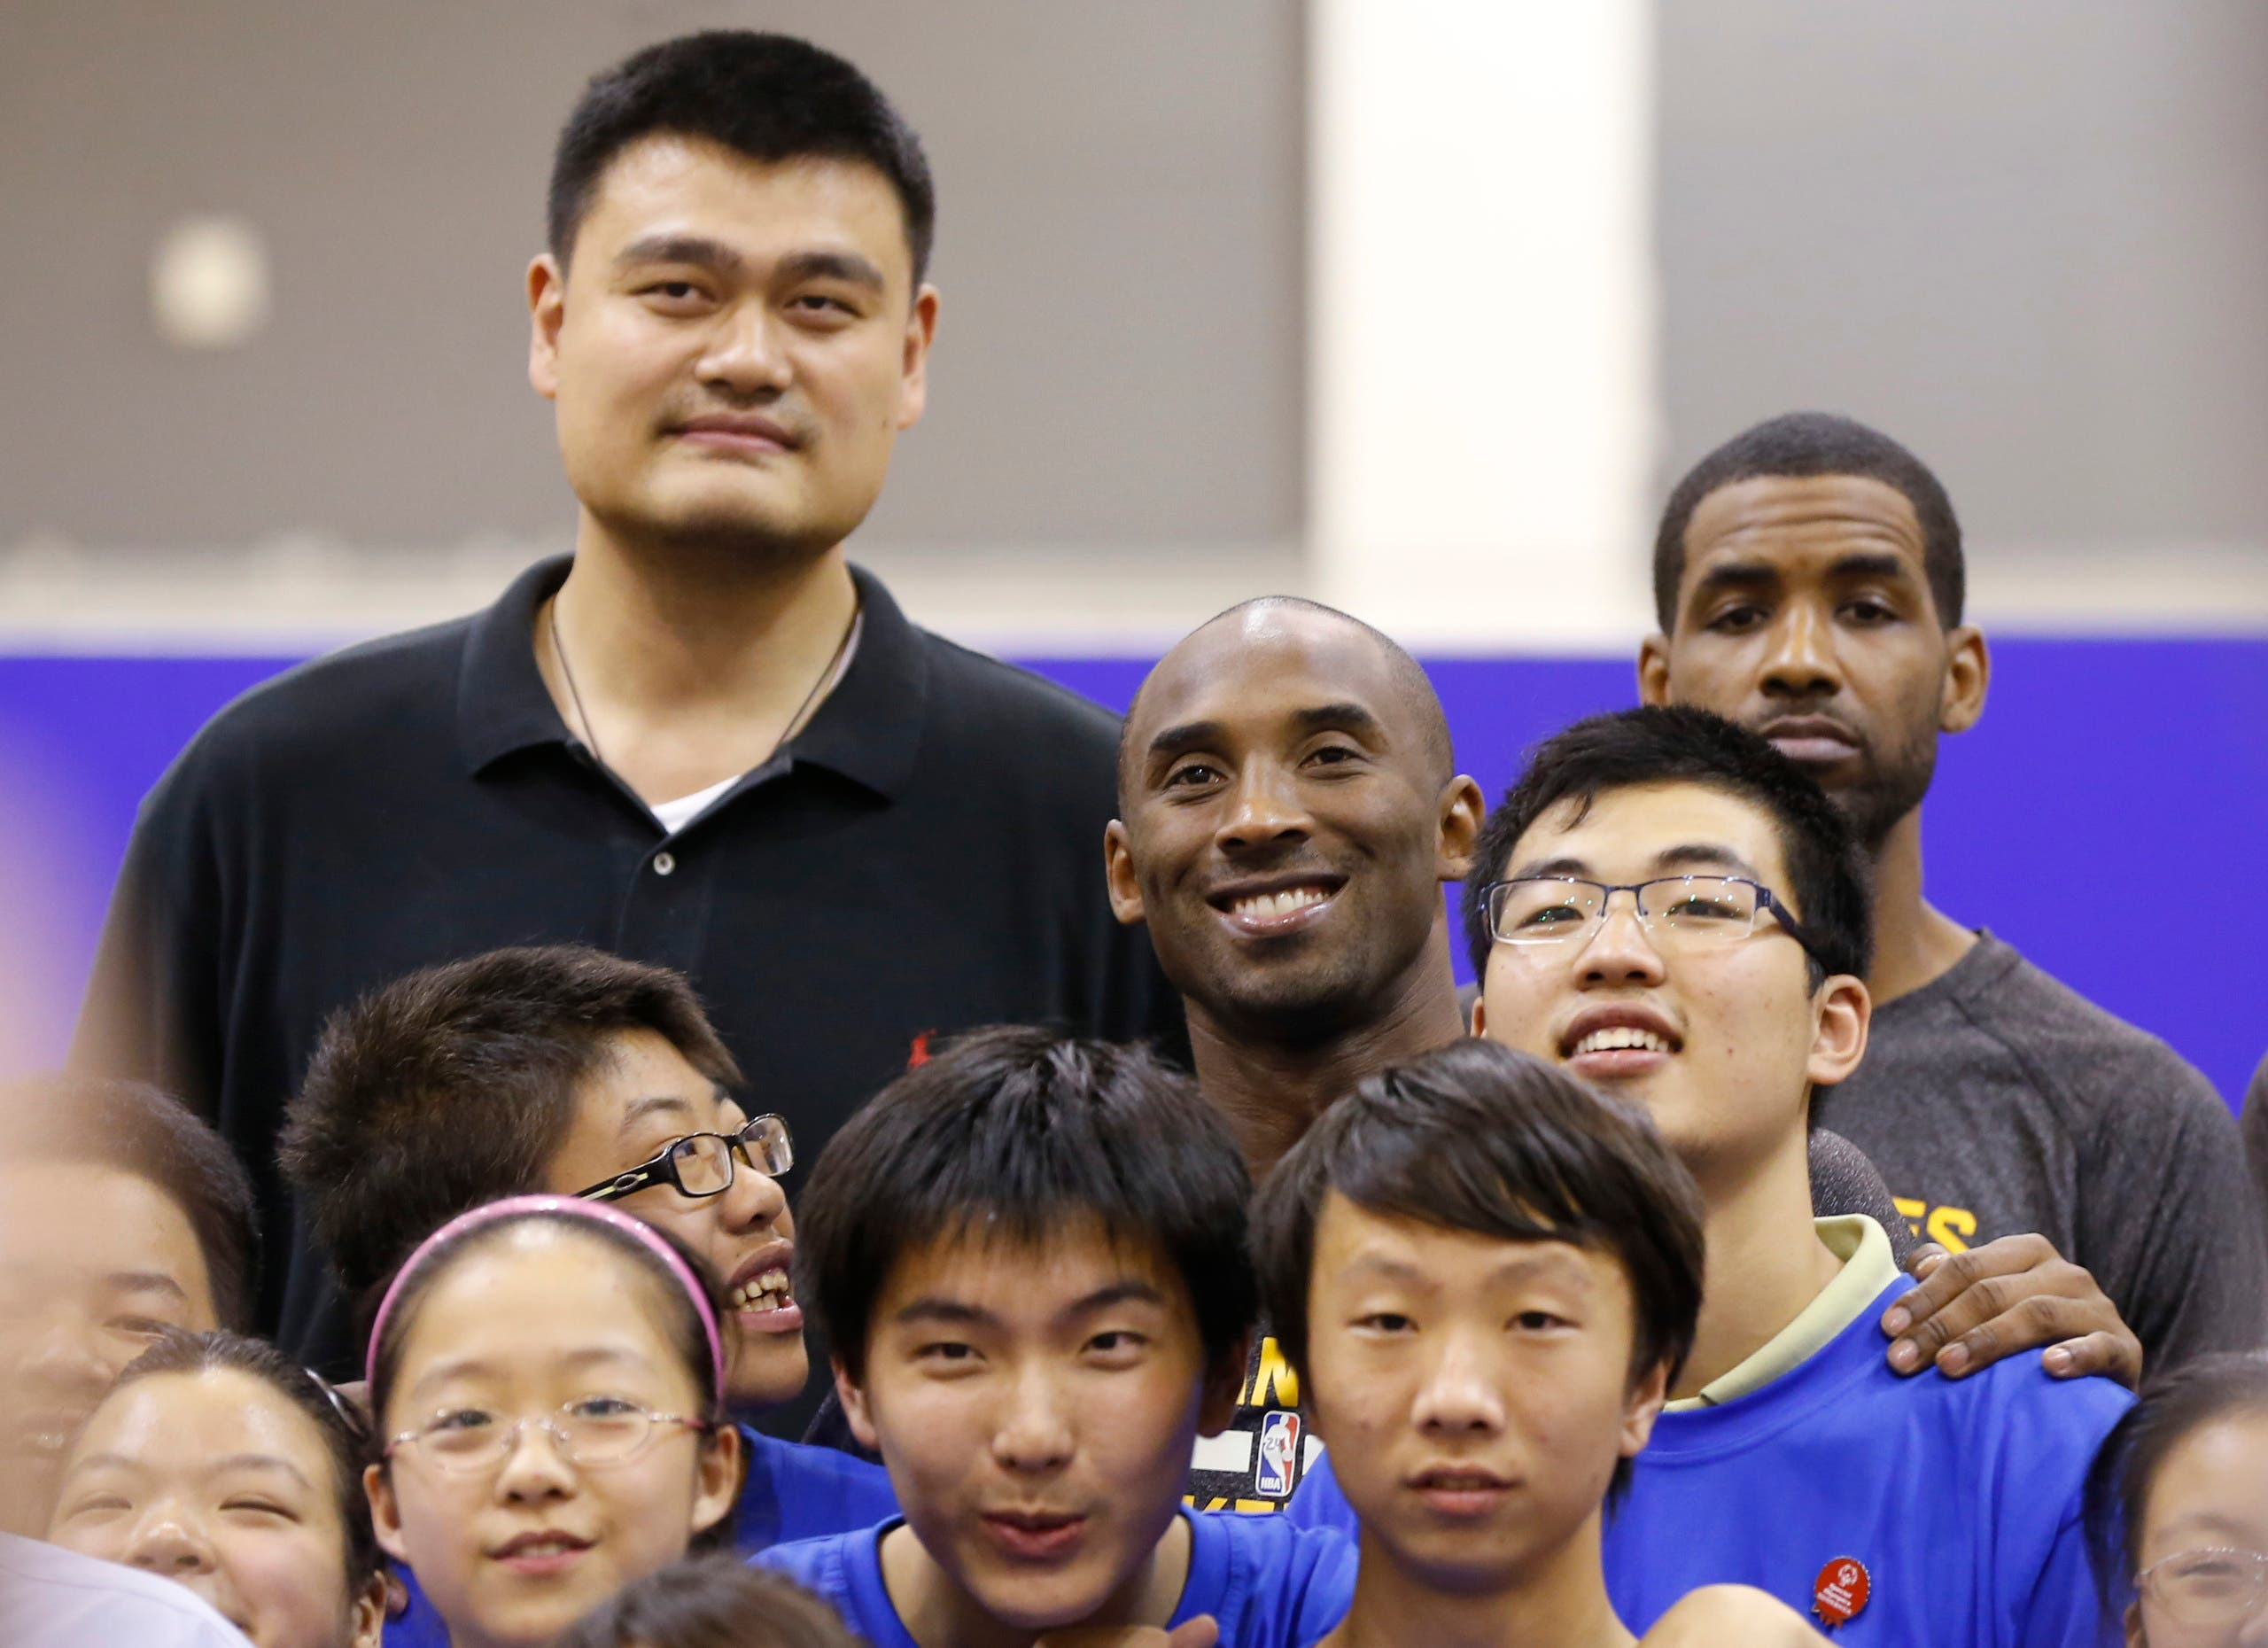 Kobe Bryant of the Los Angeles Lakers, top center, former NBA Houston Rockets basketball player Yao Ming, top left, pose with children during the NBA Cares Special Olympics Basketball Clinic in China. (AP)